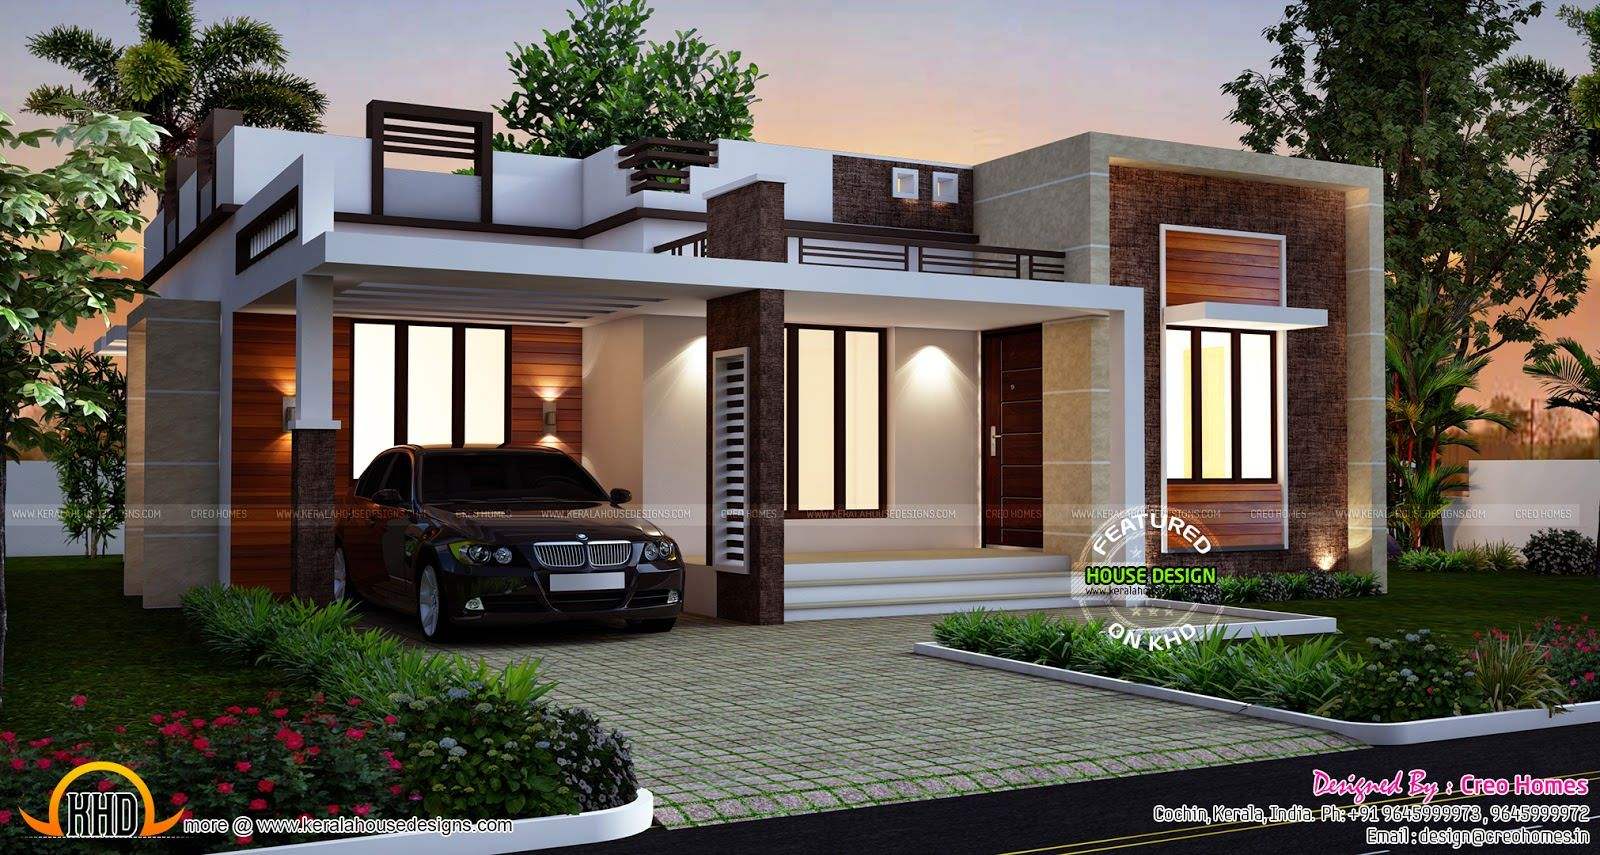 designs homes design single story flat roof house plans inspiration nice new home with trends kerala - Modern House Designs Single Floor